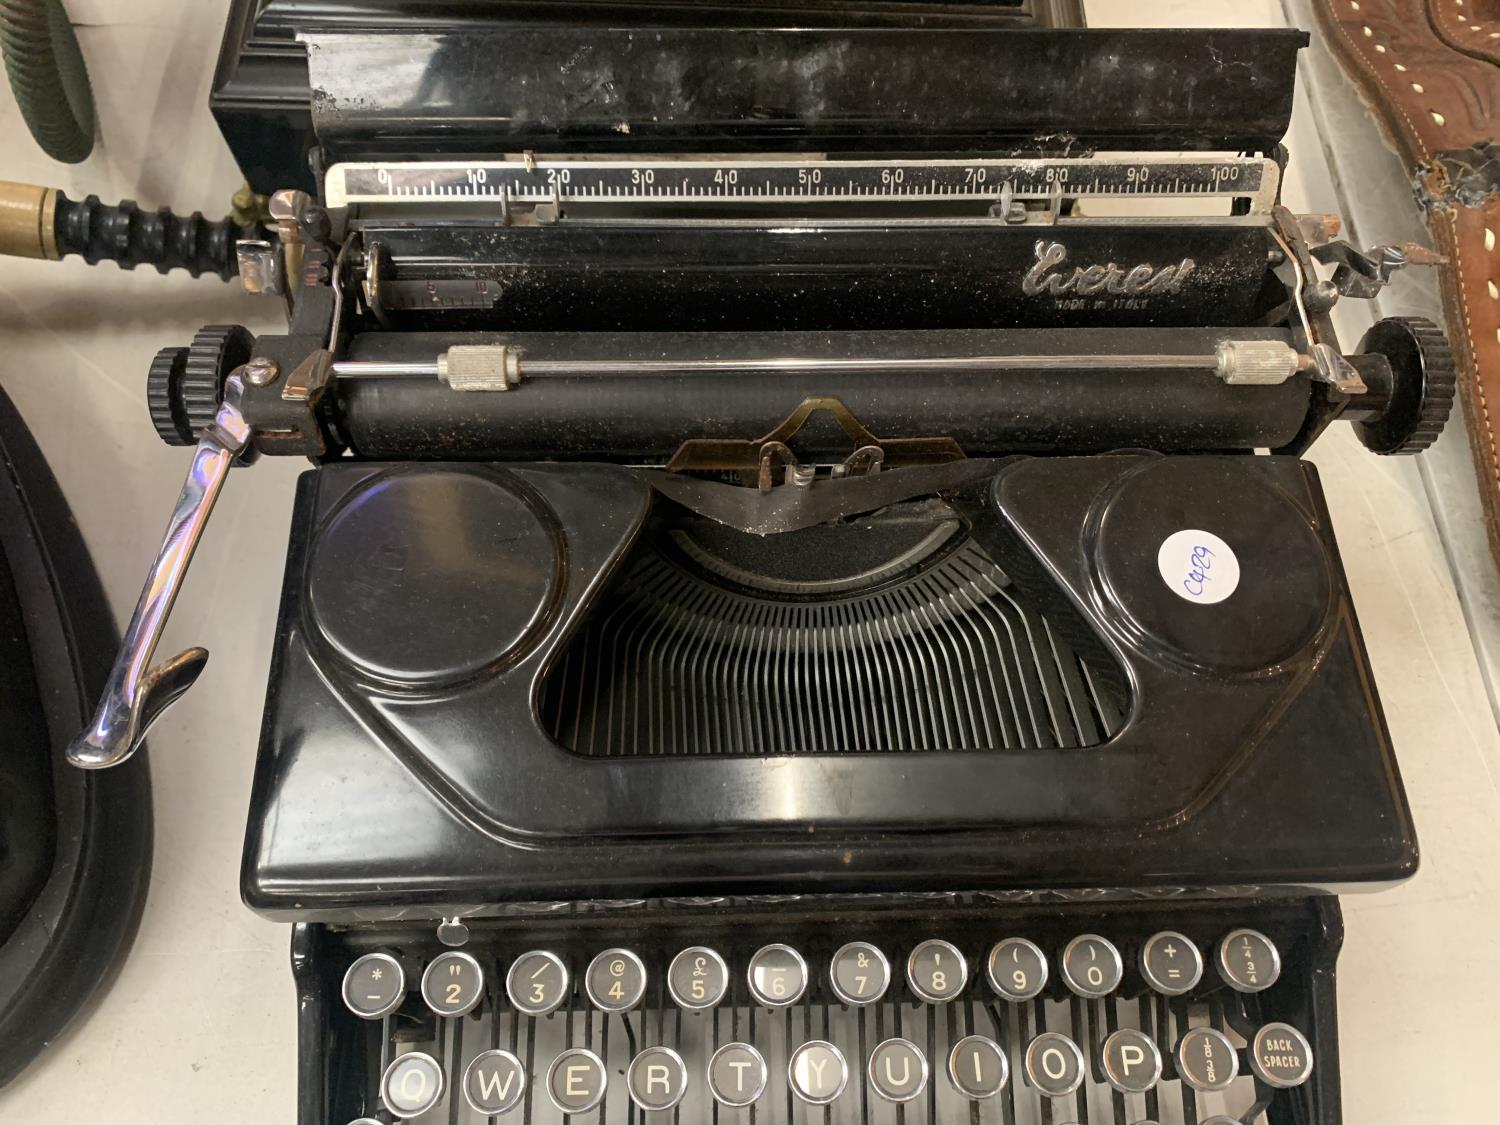 AN 'EVEREST' MADE IN ITALY VINTAGE PORTABLE TYPEWRITER MOD 90 - Image 3 of 3